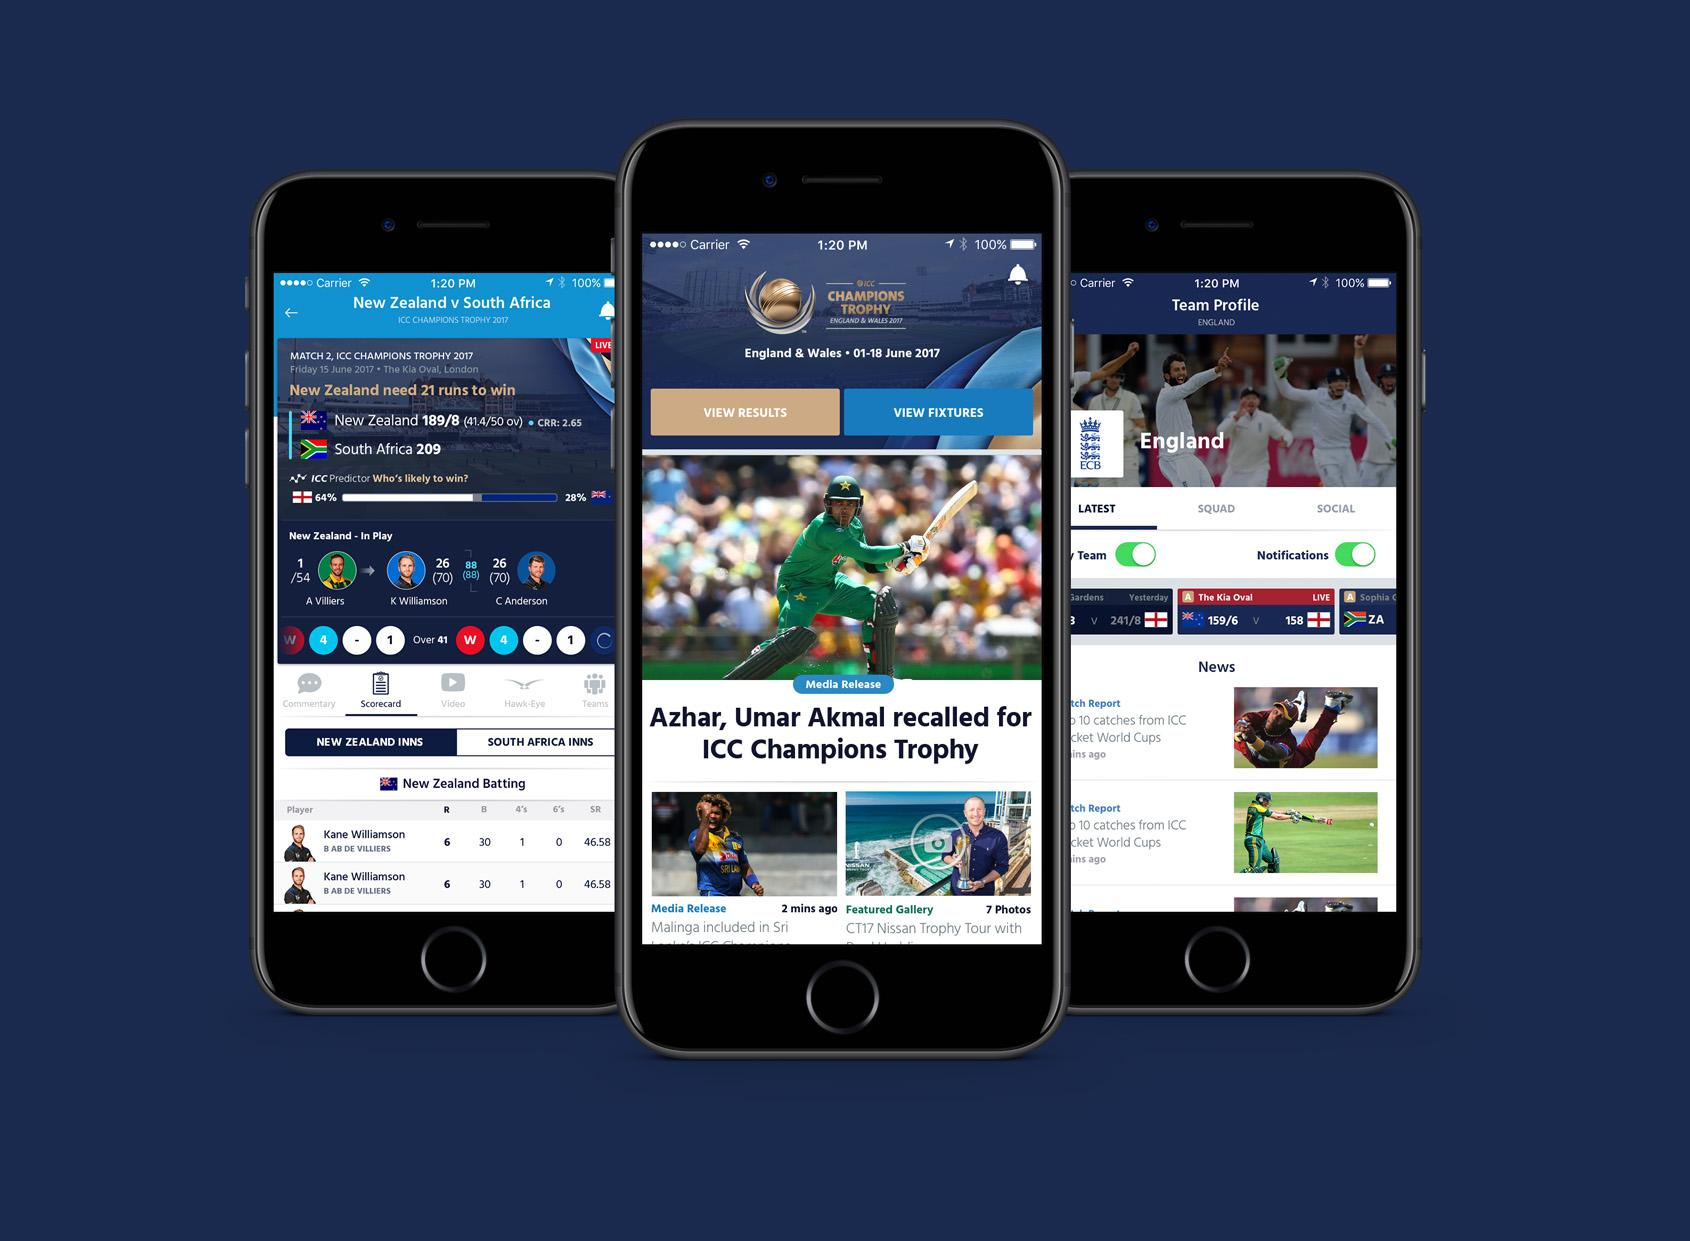 ICC launches new mobile app ahead of Champions Trophy 2017